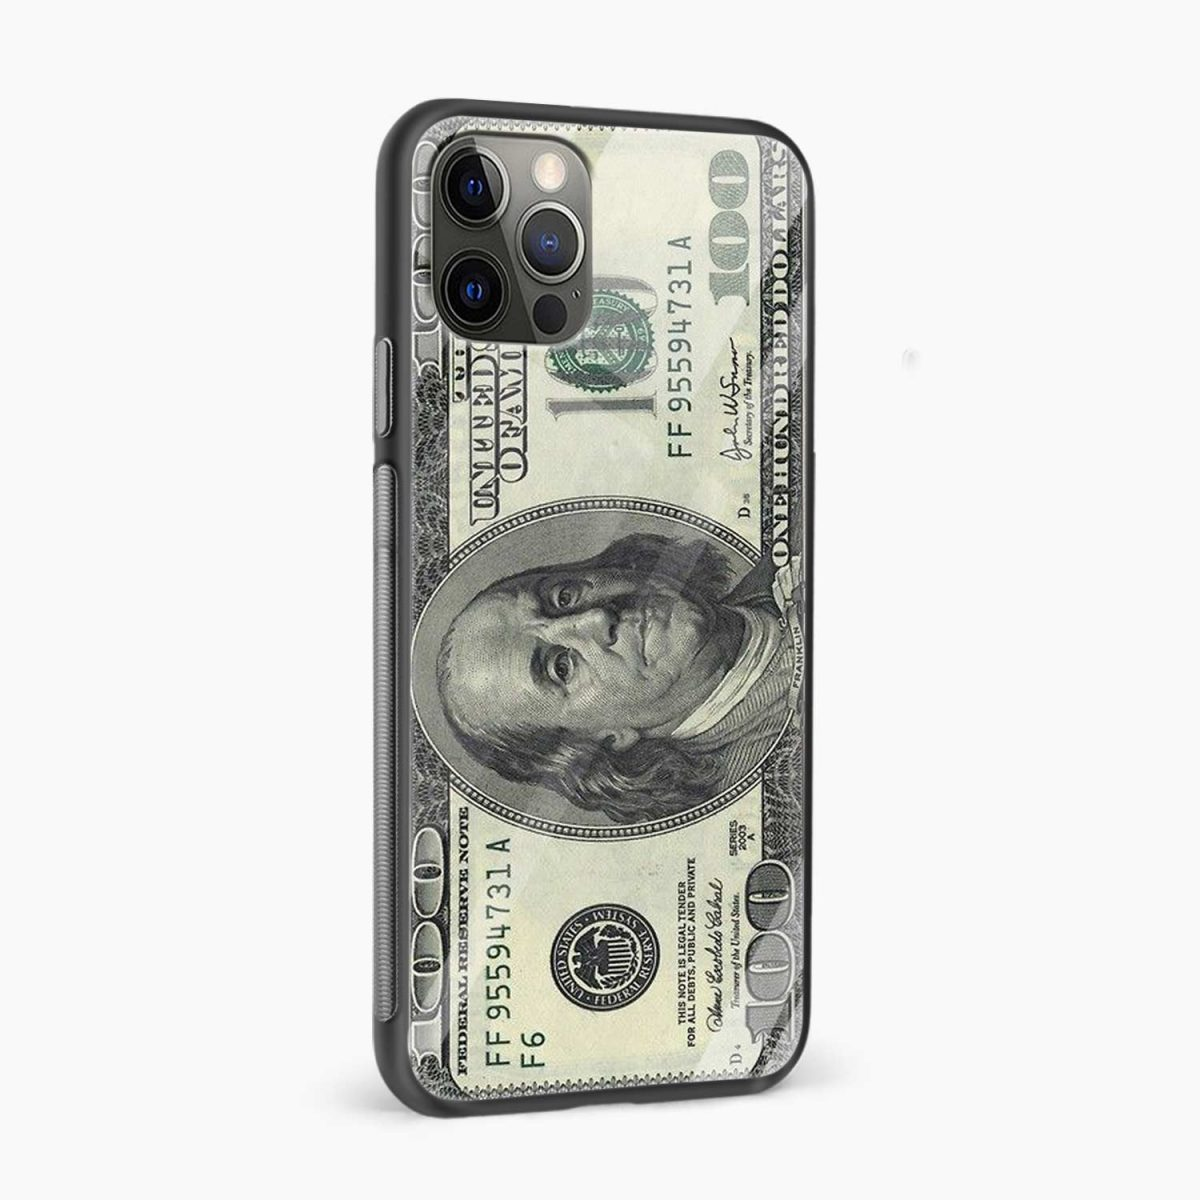 dollar iphone pro back cover side view